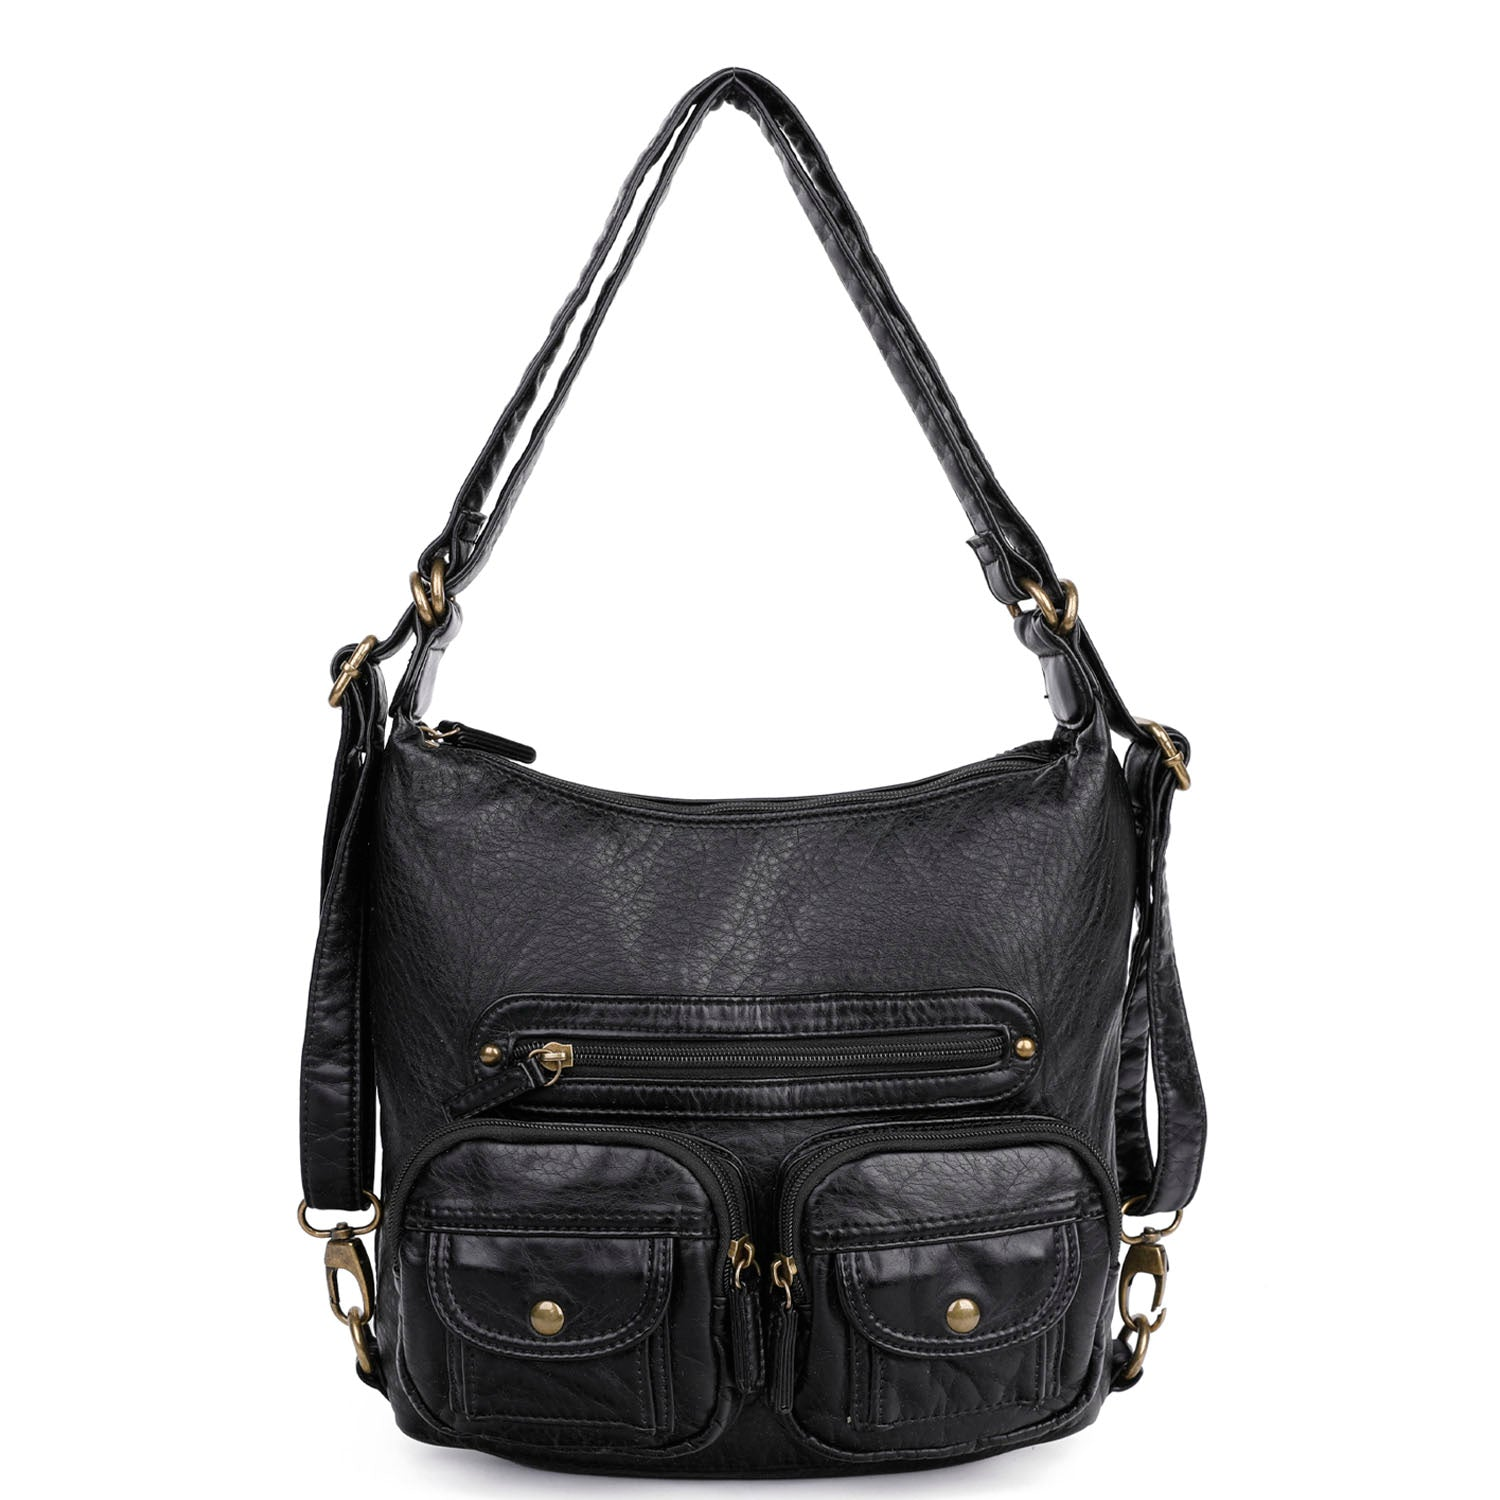 Vegan Leather Convertible Backpack /& Crossbody Bag Purse by Ampere Creations